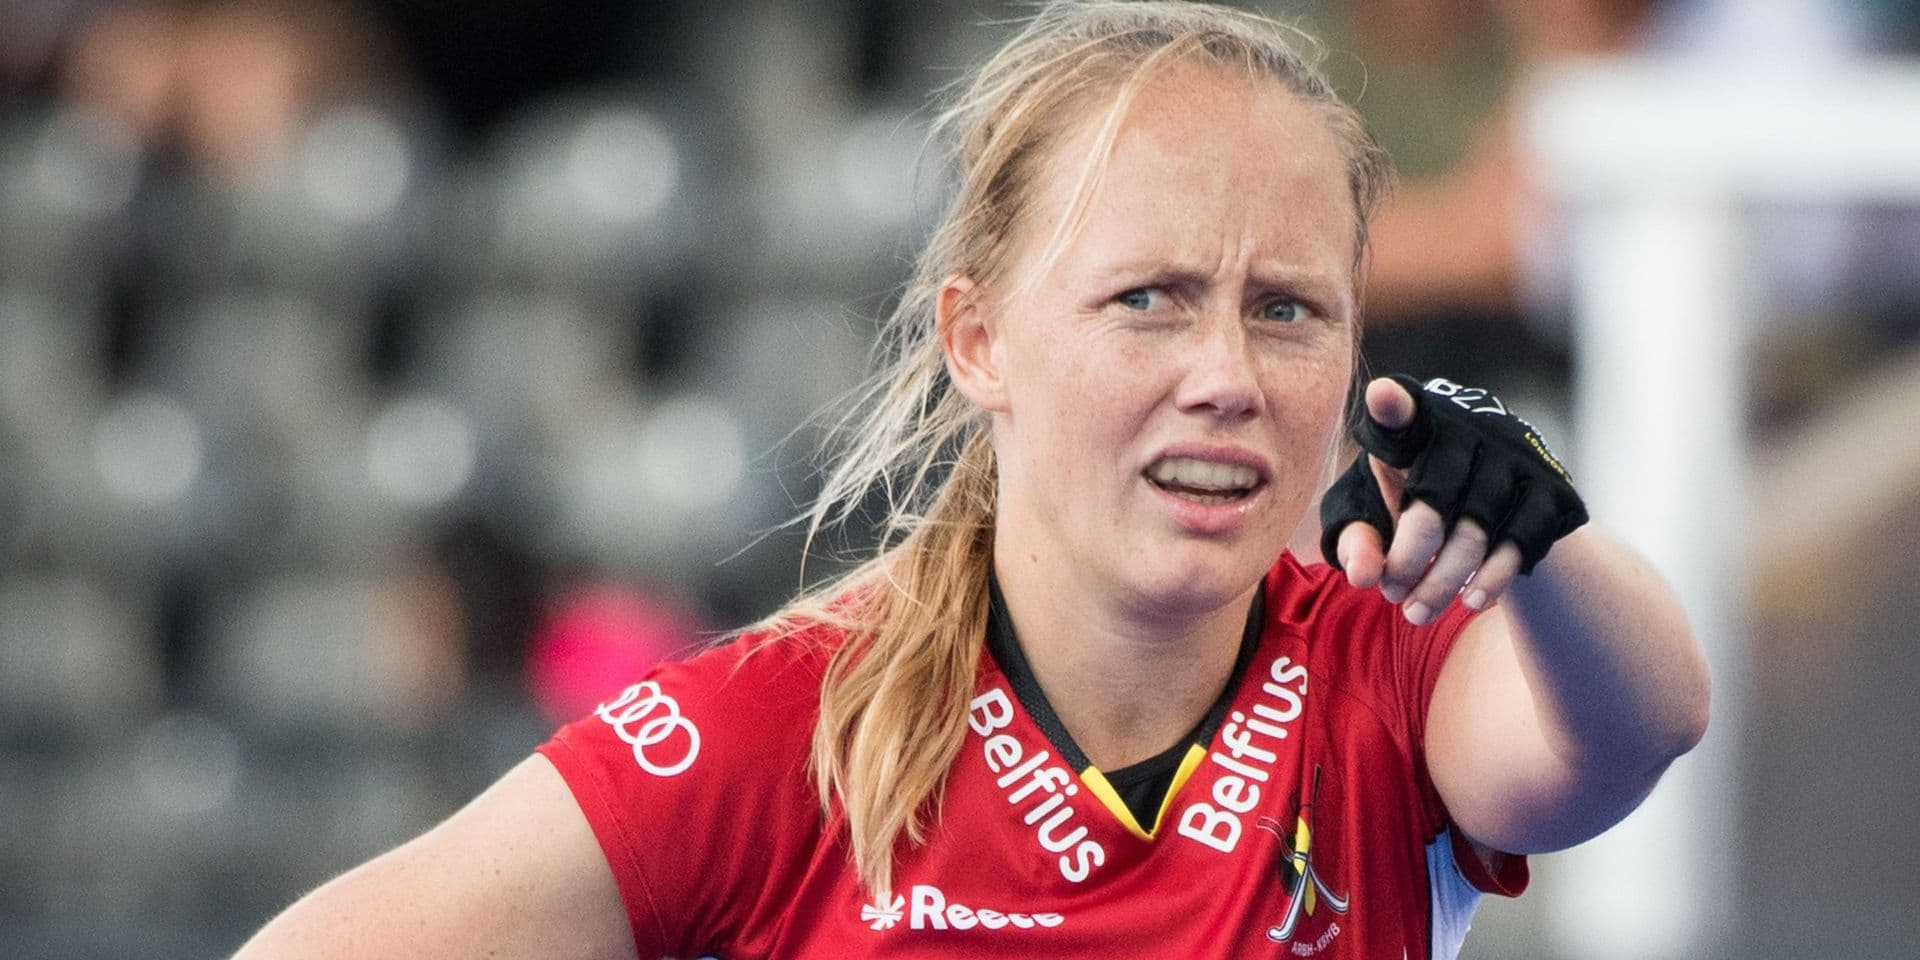 Belgium's Jill Boon pictured during the game between Spain and Belgium in the cross over at the Hockey Women's World Cup, in London, UK, Monday 30 July 2018. The Hockey Women's World Cup takes place from 21 July to 05 August at the Lee Valley Hockey Centre in London. BELGA PHOTO BENOIT DOPPAGNE